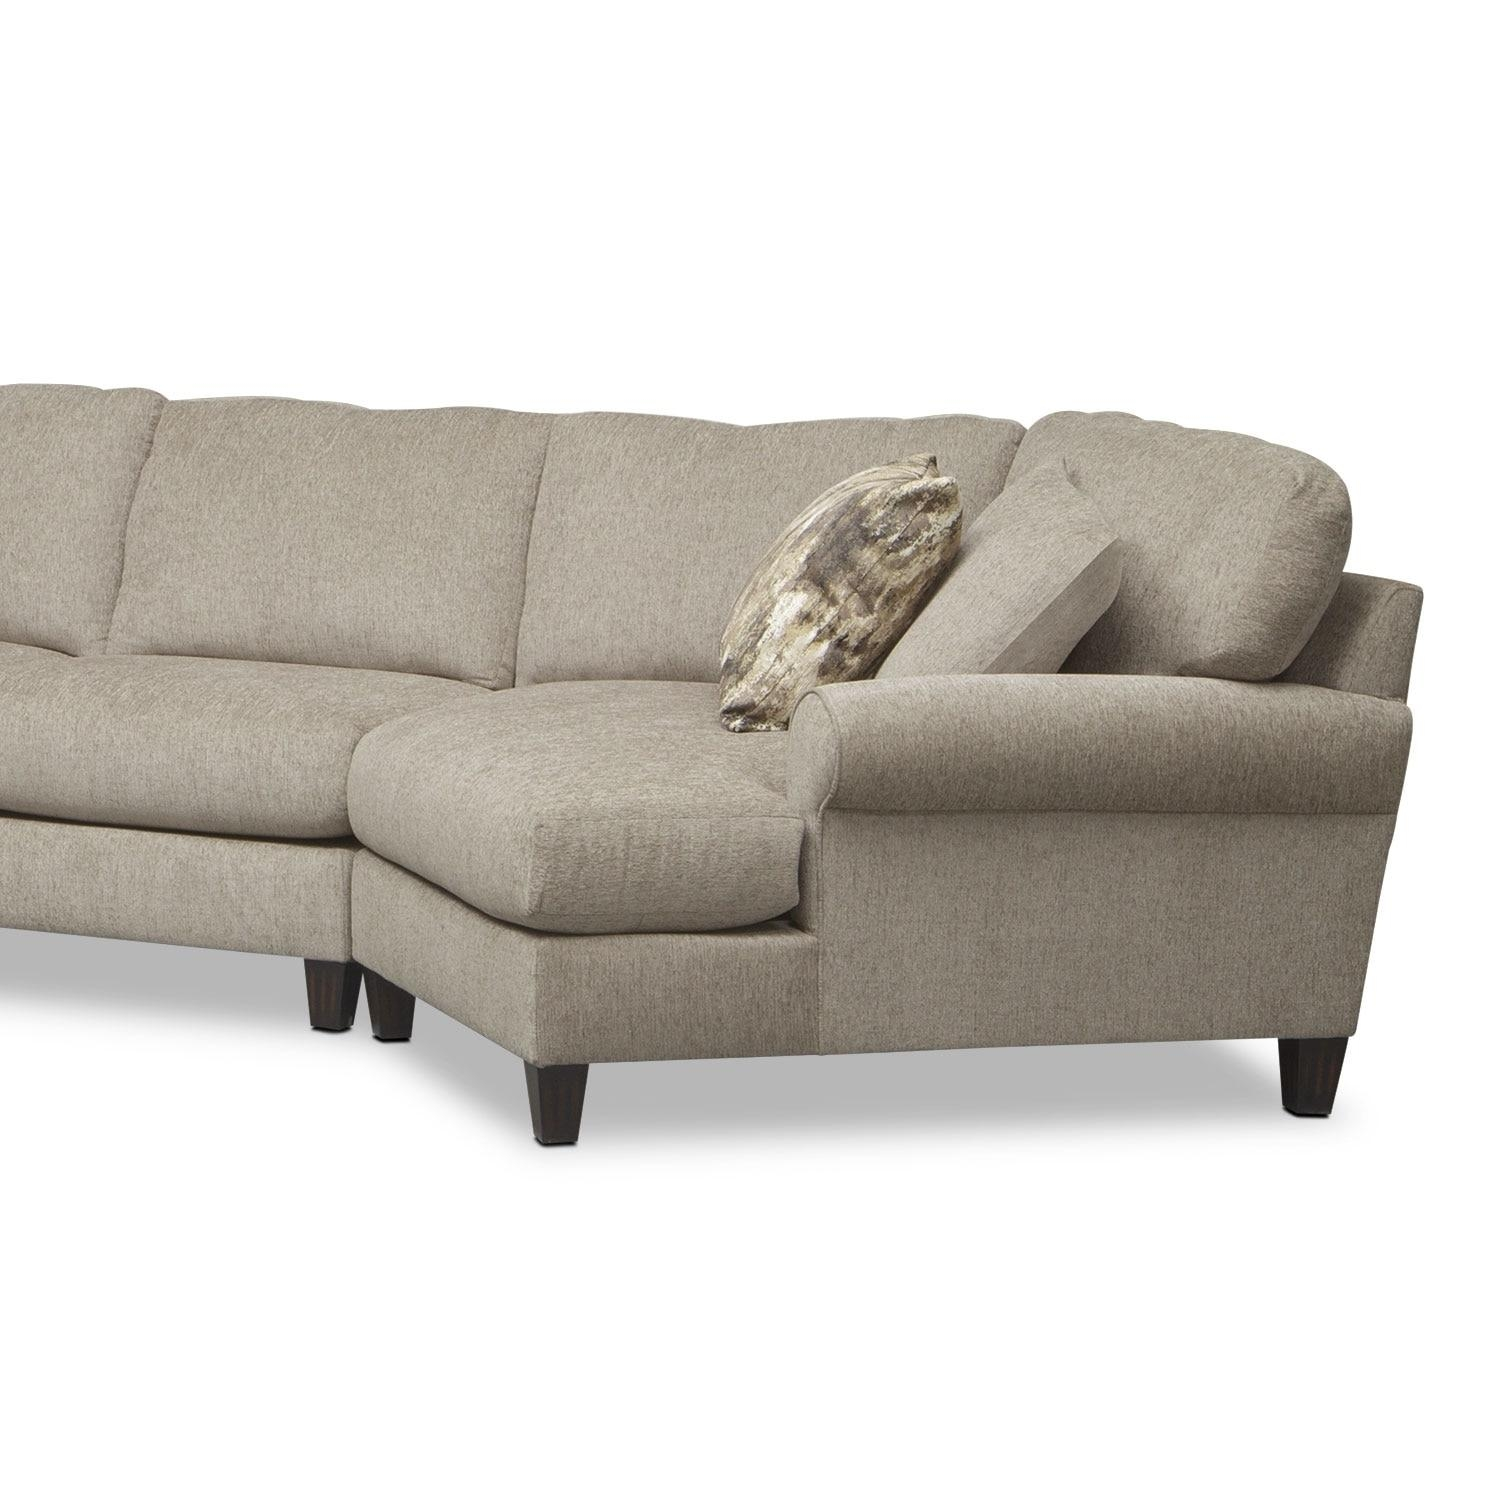 Karma 3 Piece Sectional With Right Facing Cuddler And Left Facing Intended For Sectional Sofa With Cuddler Chaise (Image 10 of 20)